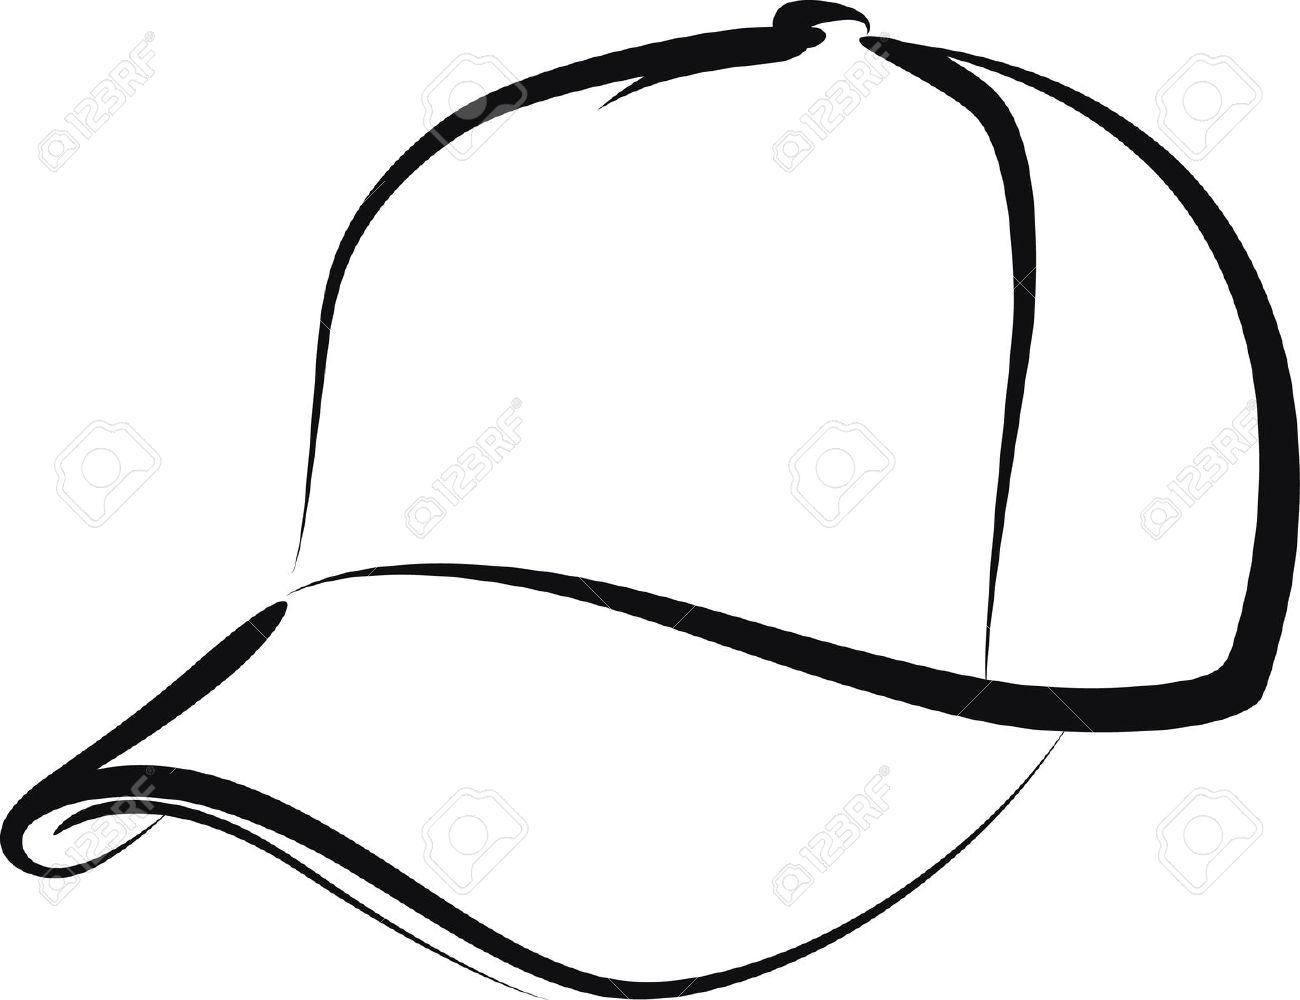 Baseball cap side view clipart.